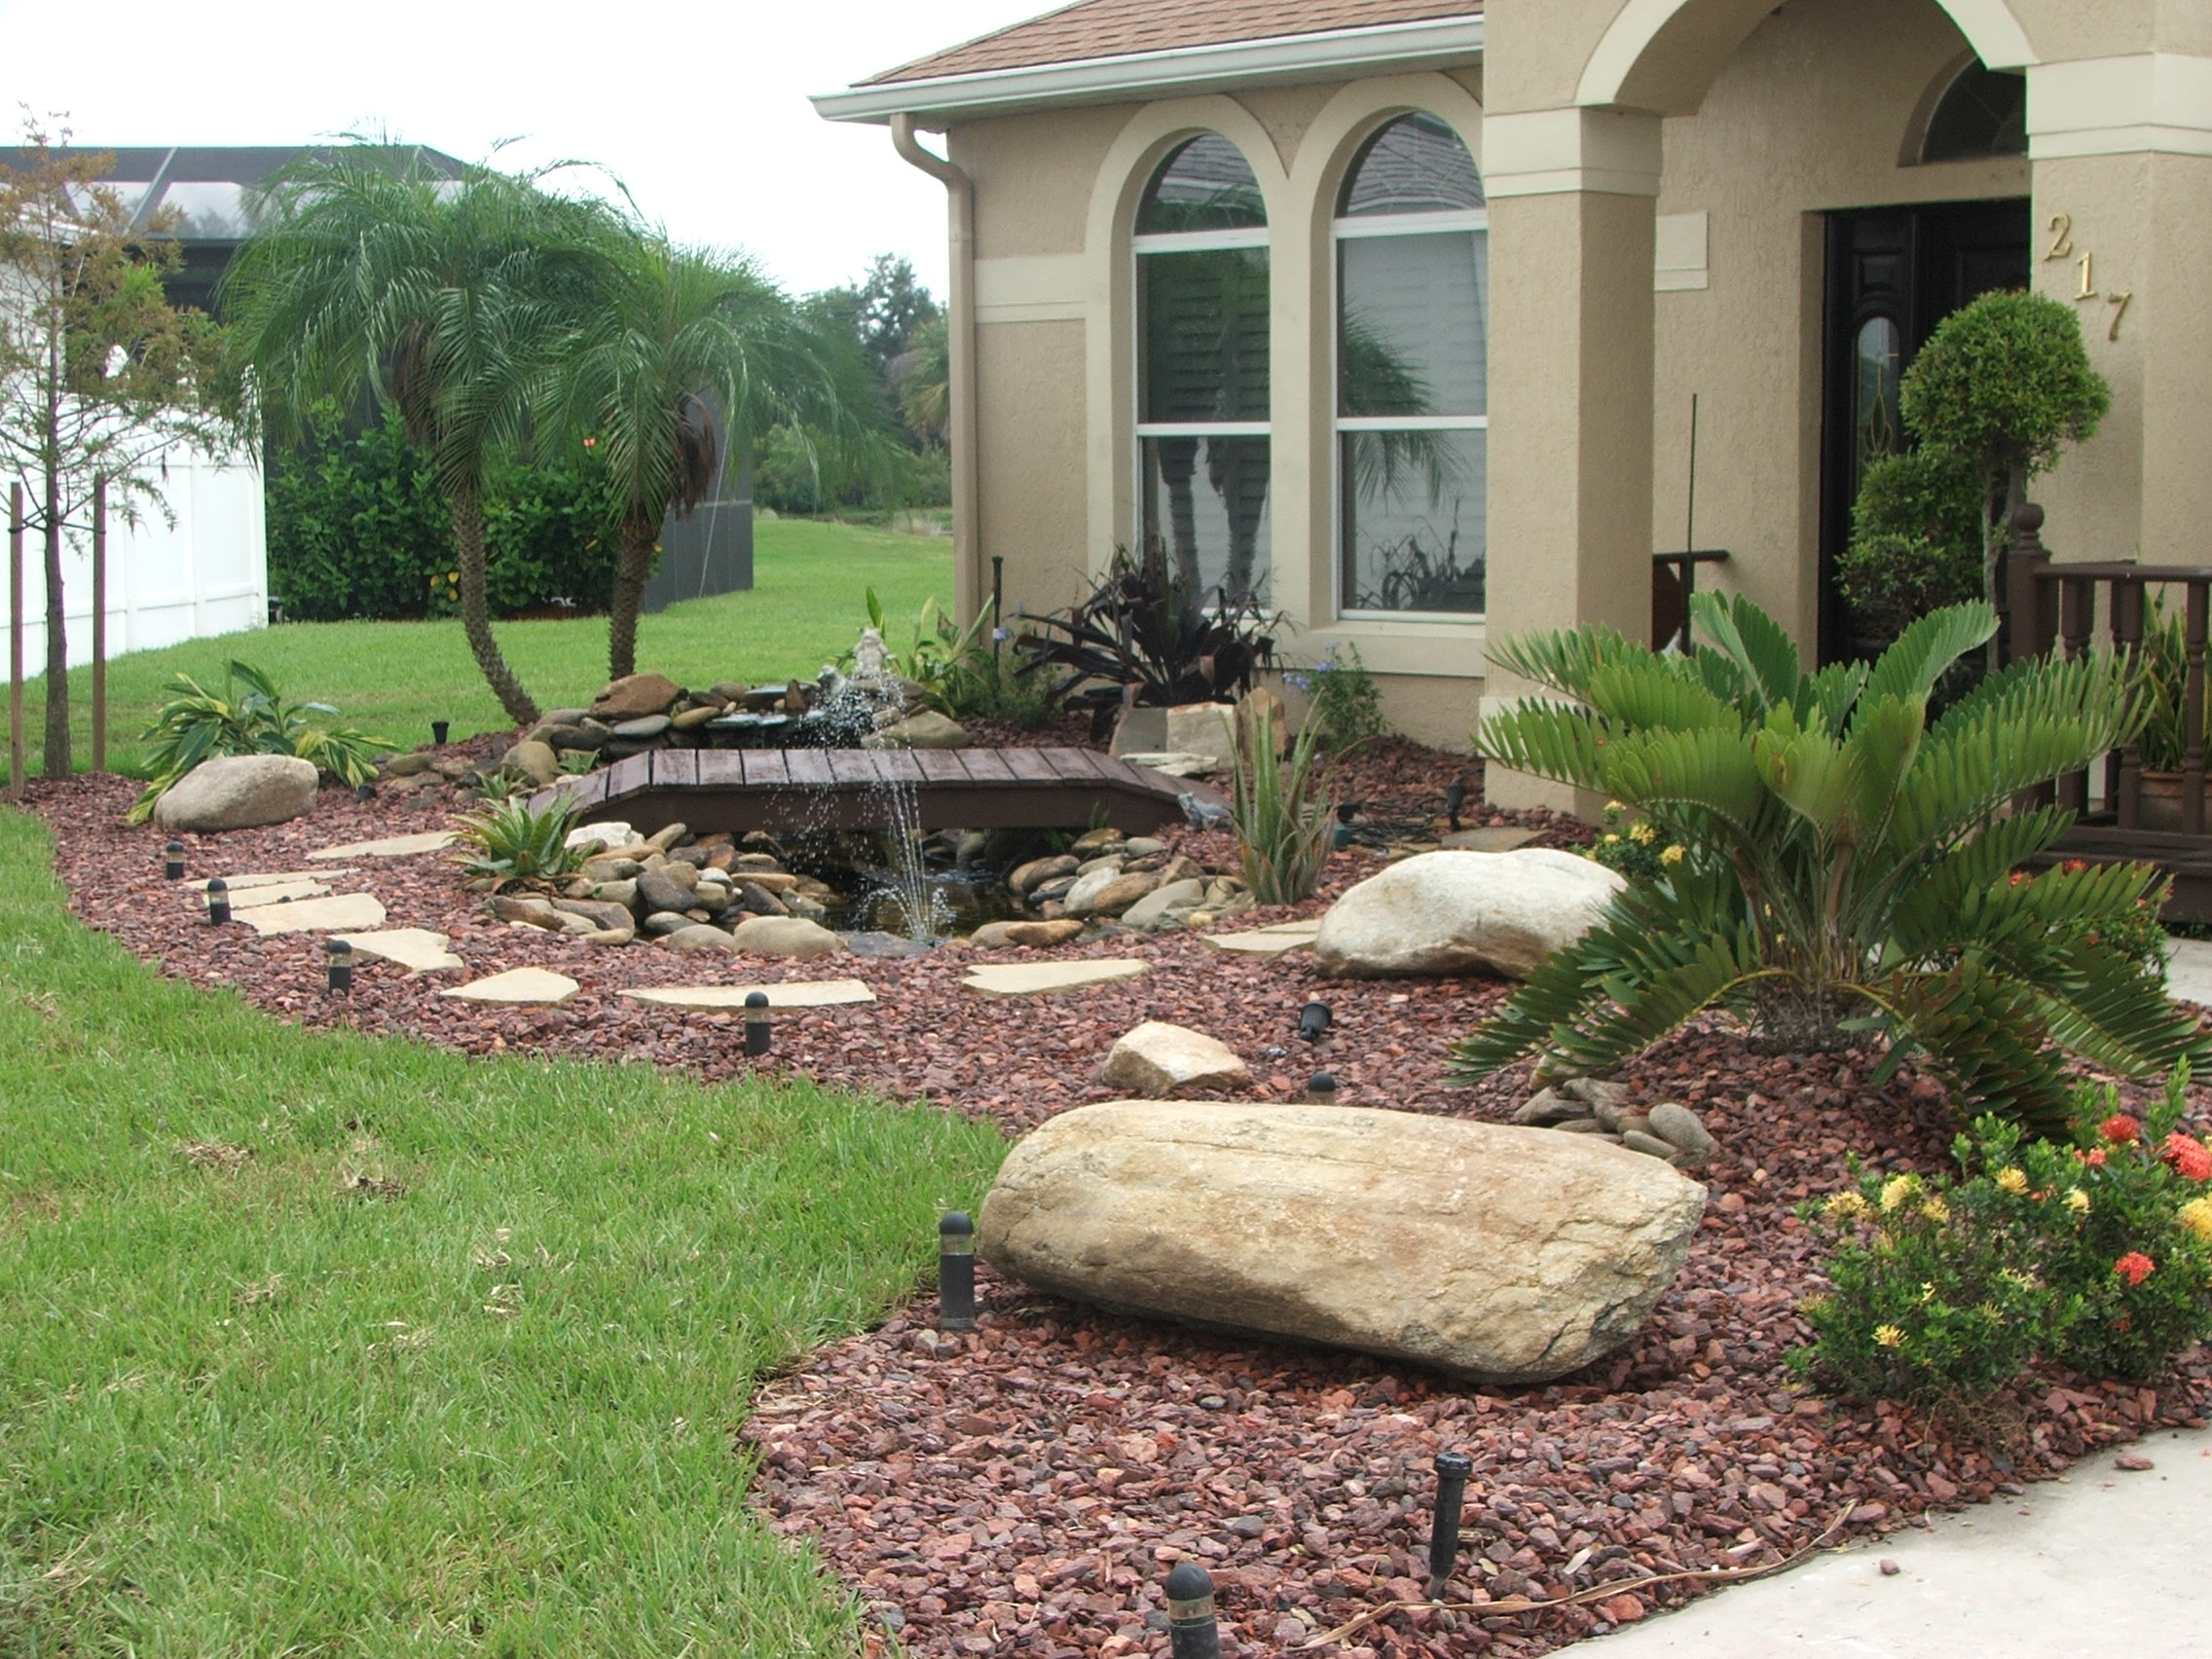 Natural large rocks for landscaping homesfeed for Home and garden landscaping